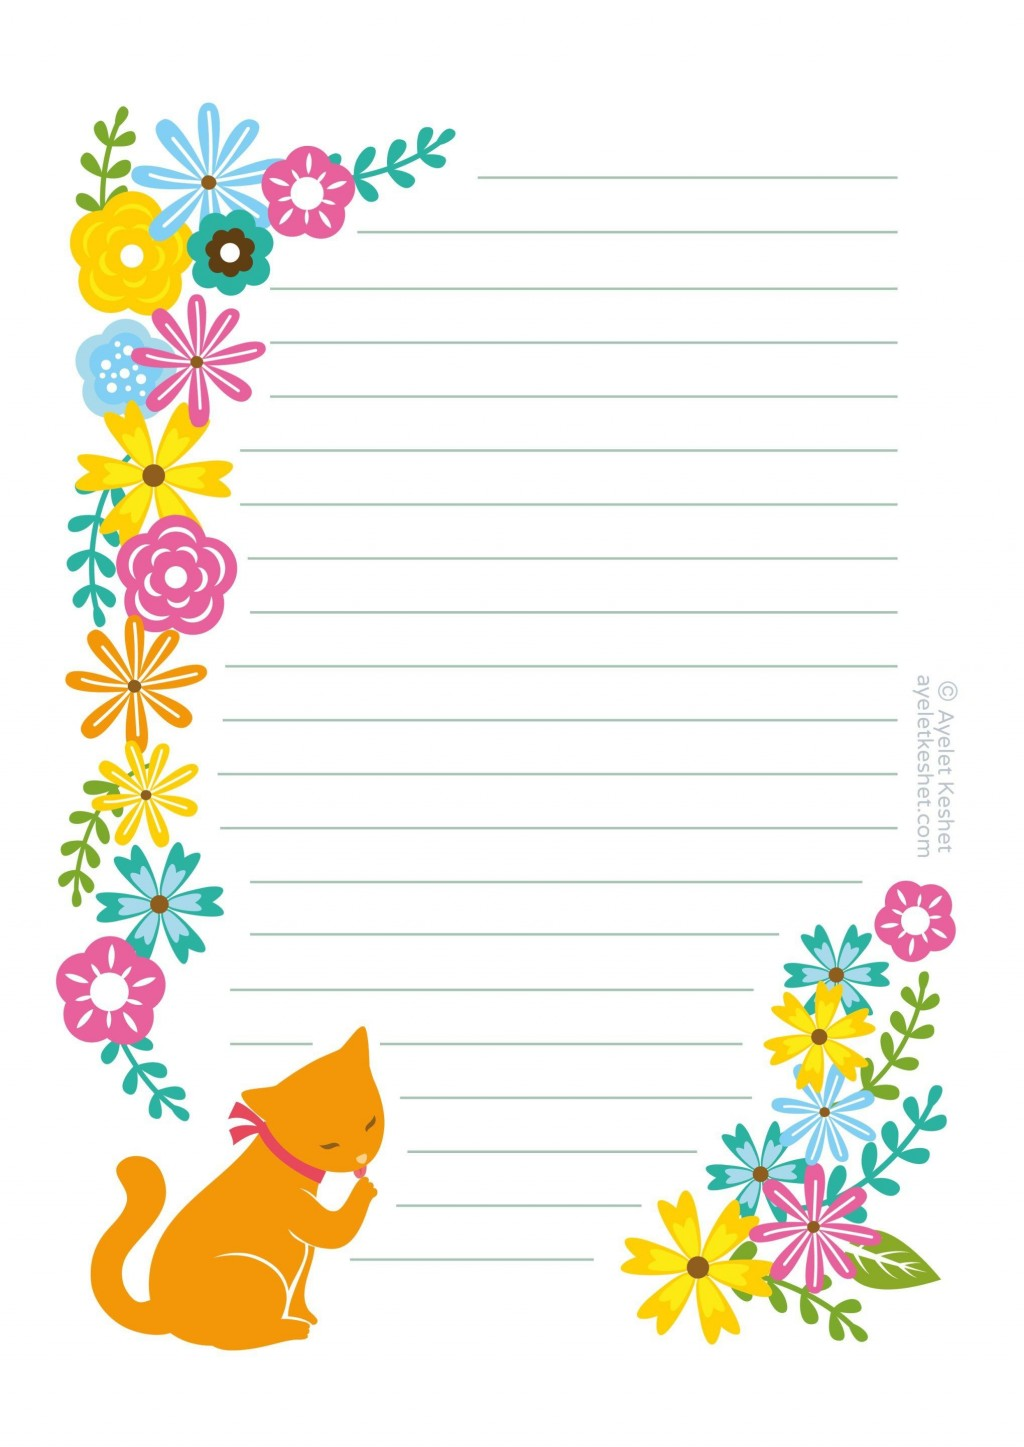 008 Unique Free Printable Stationery Paper Template Highest Clarity  TemplatesLarge